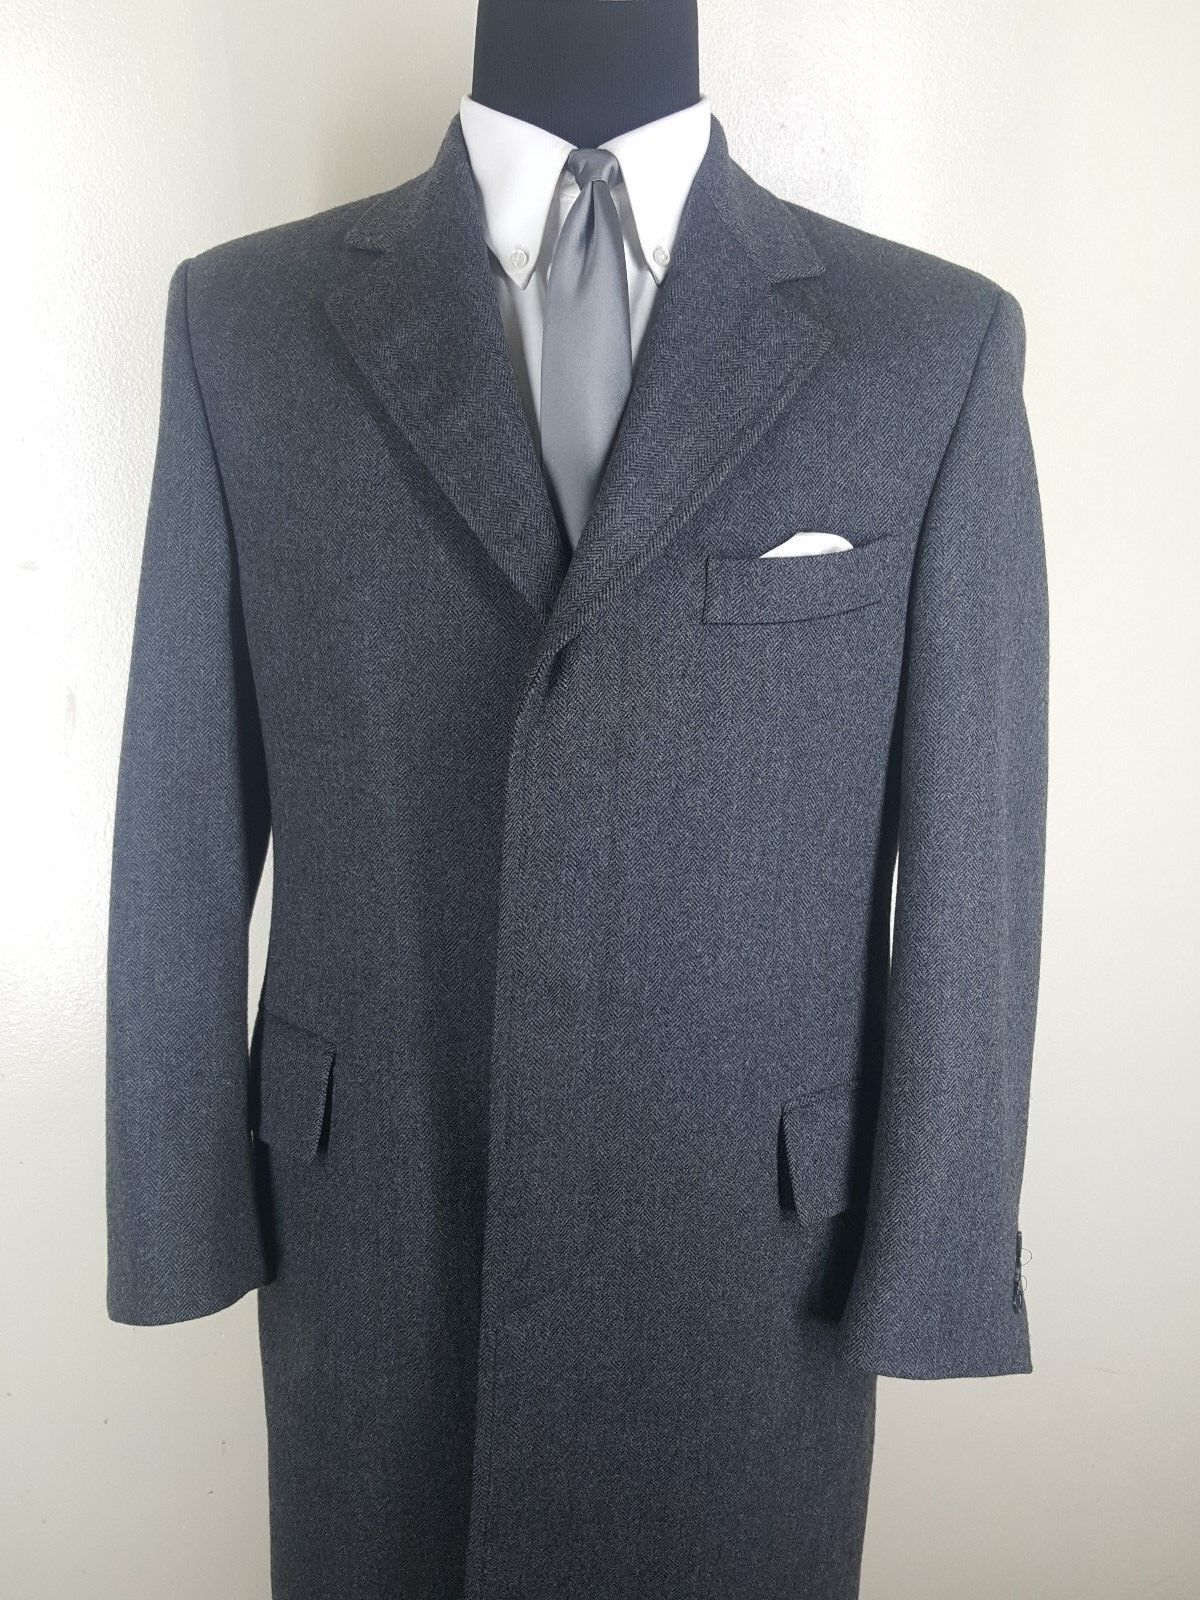 J.PRESS  Made In Canada 100% Wool 3 Button Topcoat     Fit  41 -43 Reg